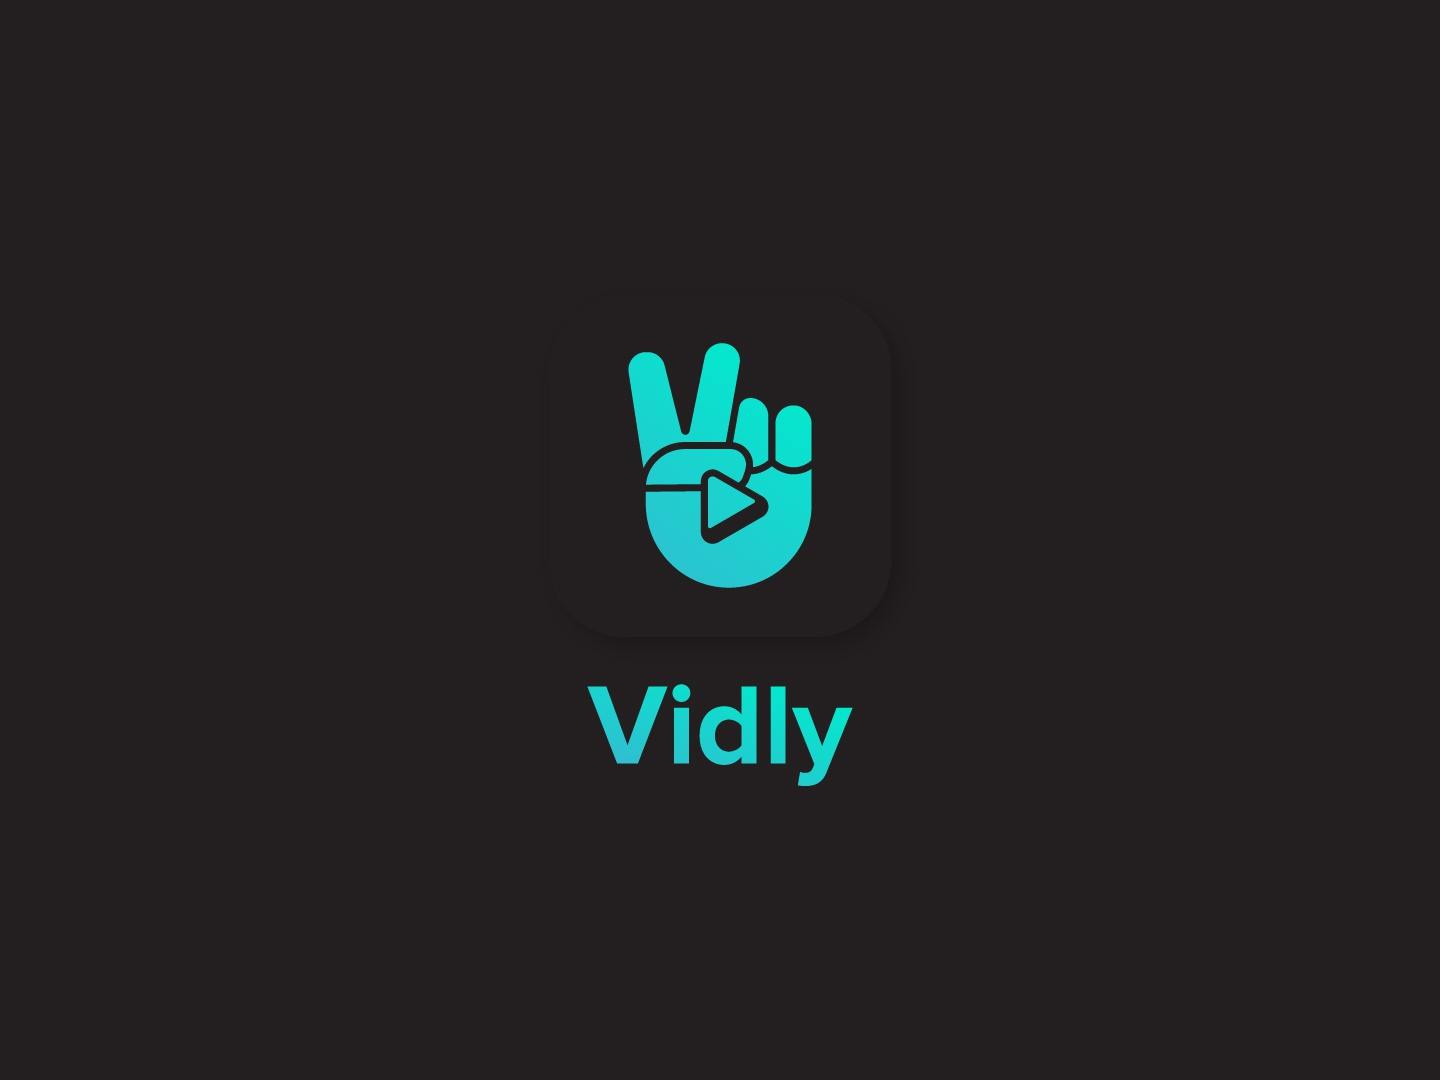 Vidly by Haris Rizwan on Dribbble